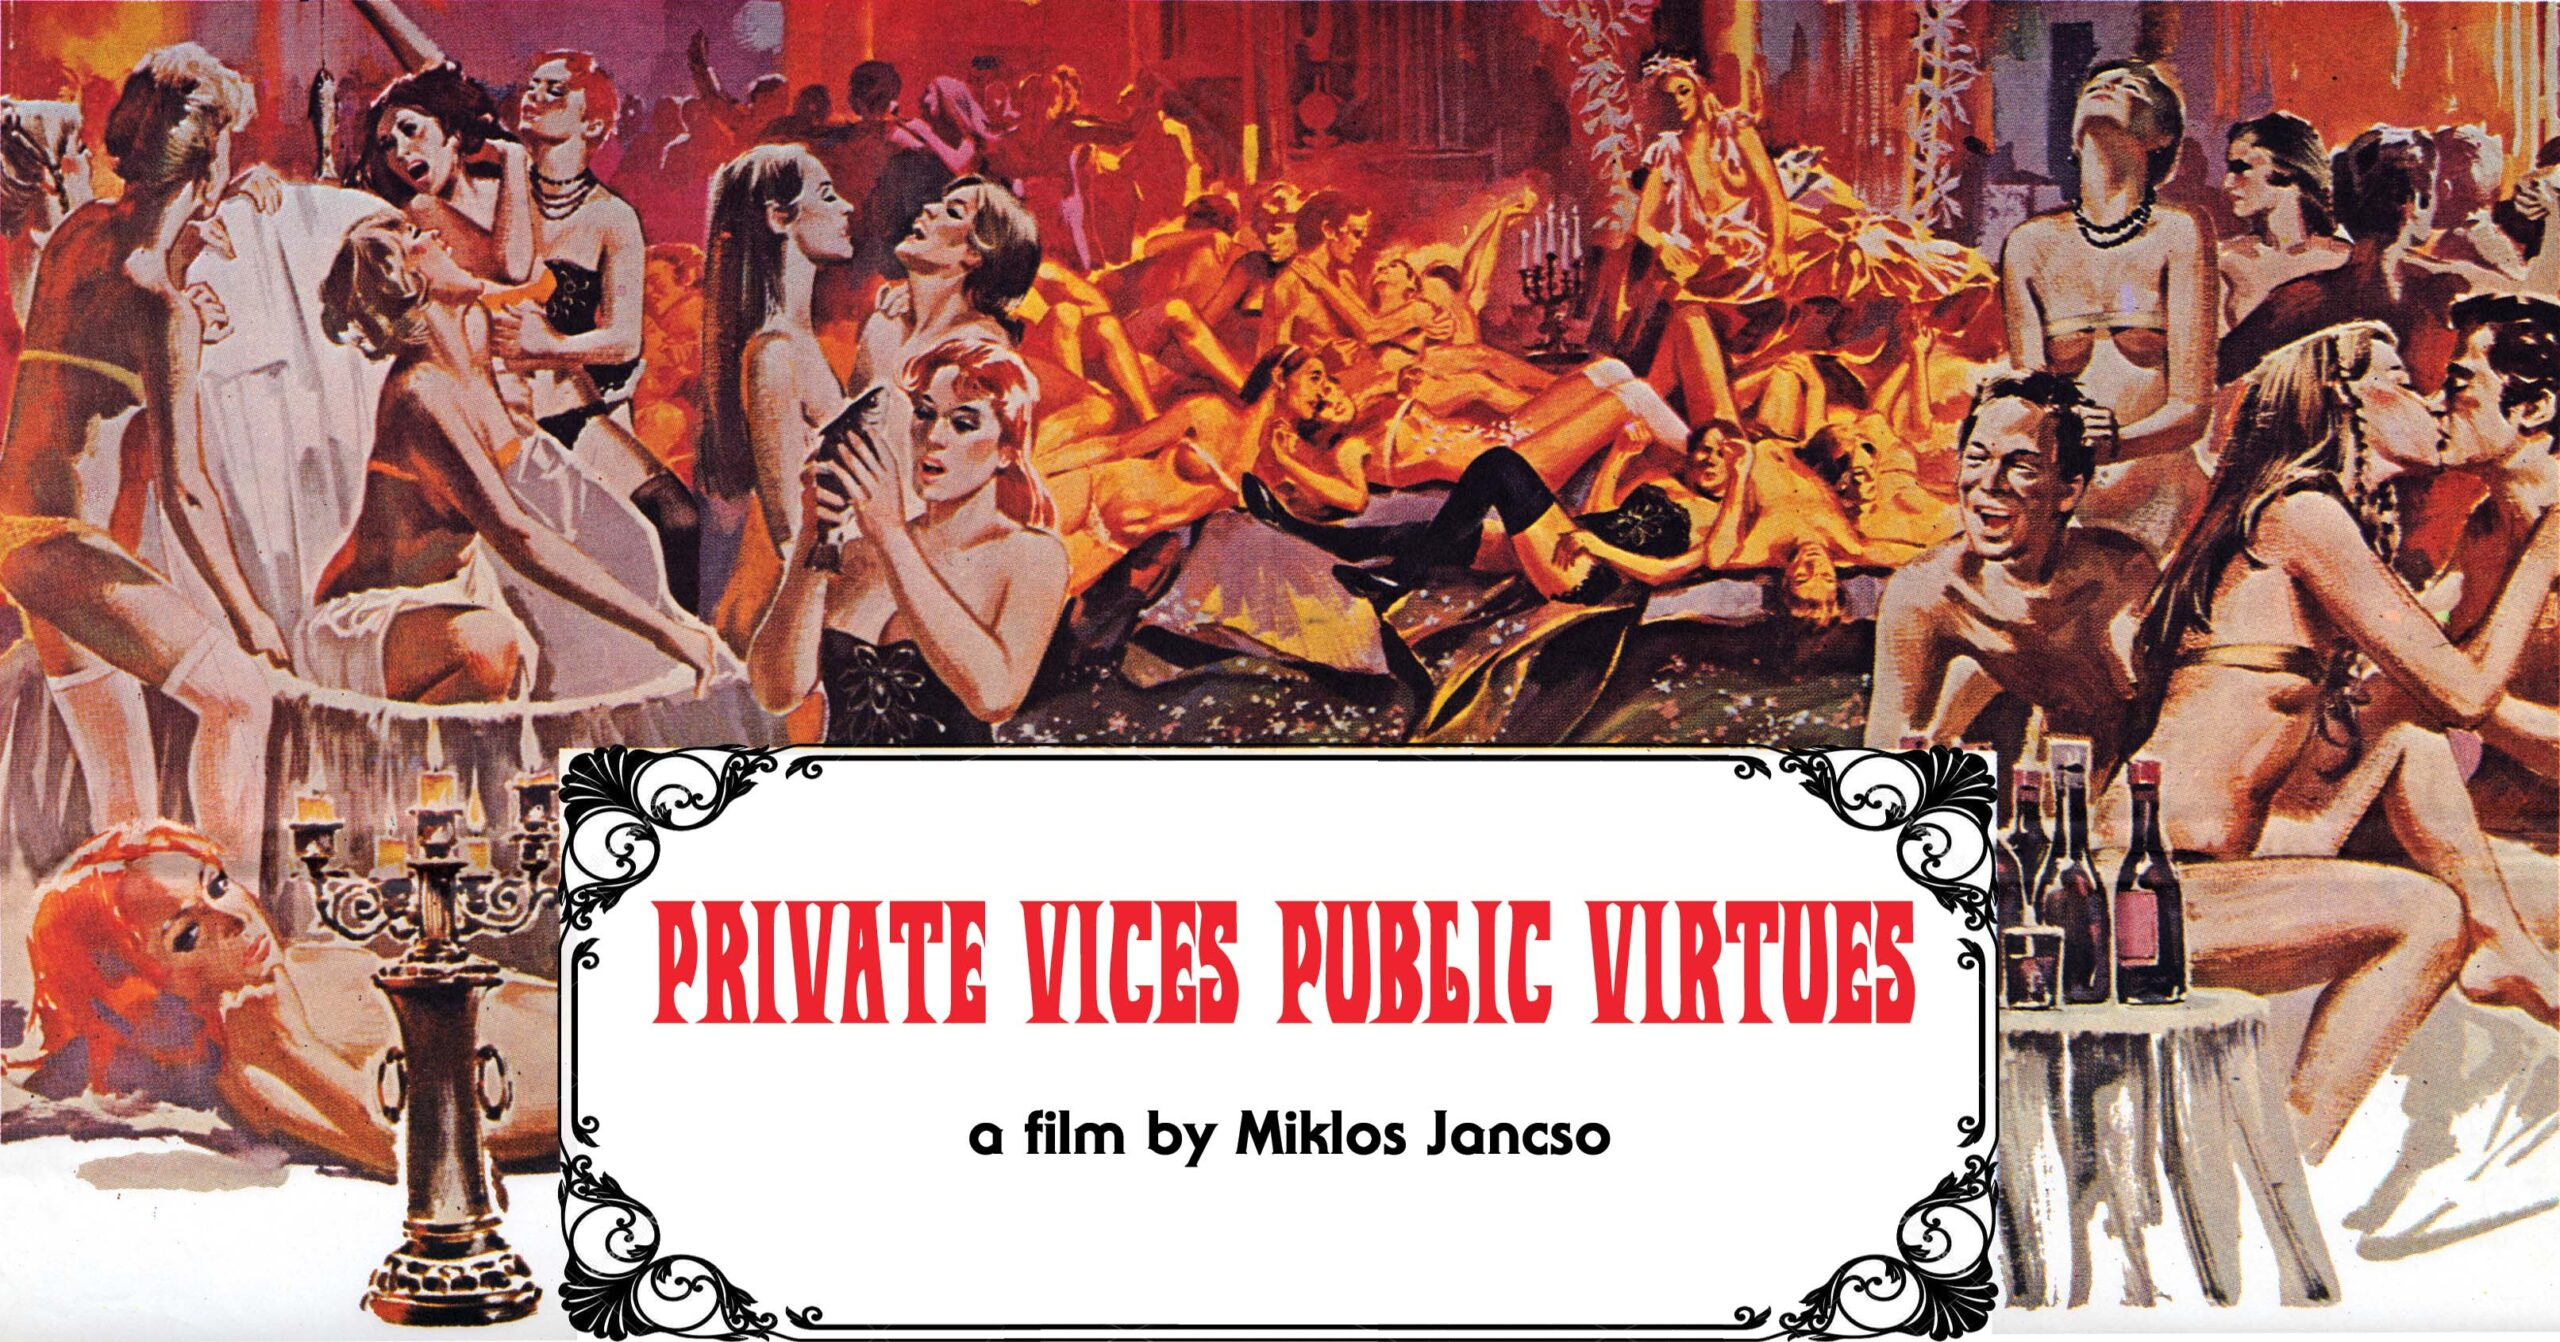 Mondo Macabro Bringing 1975 Miklos Jancso Gem 'Private Vices Public Virtues' To Blu-Ray